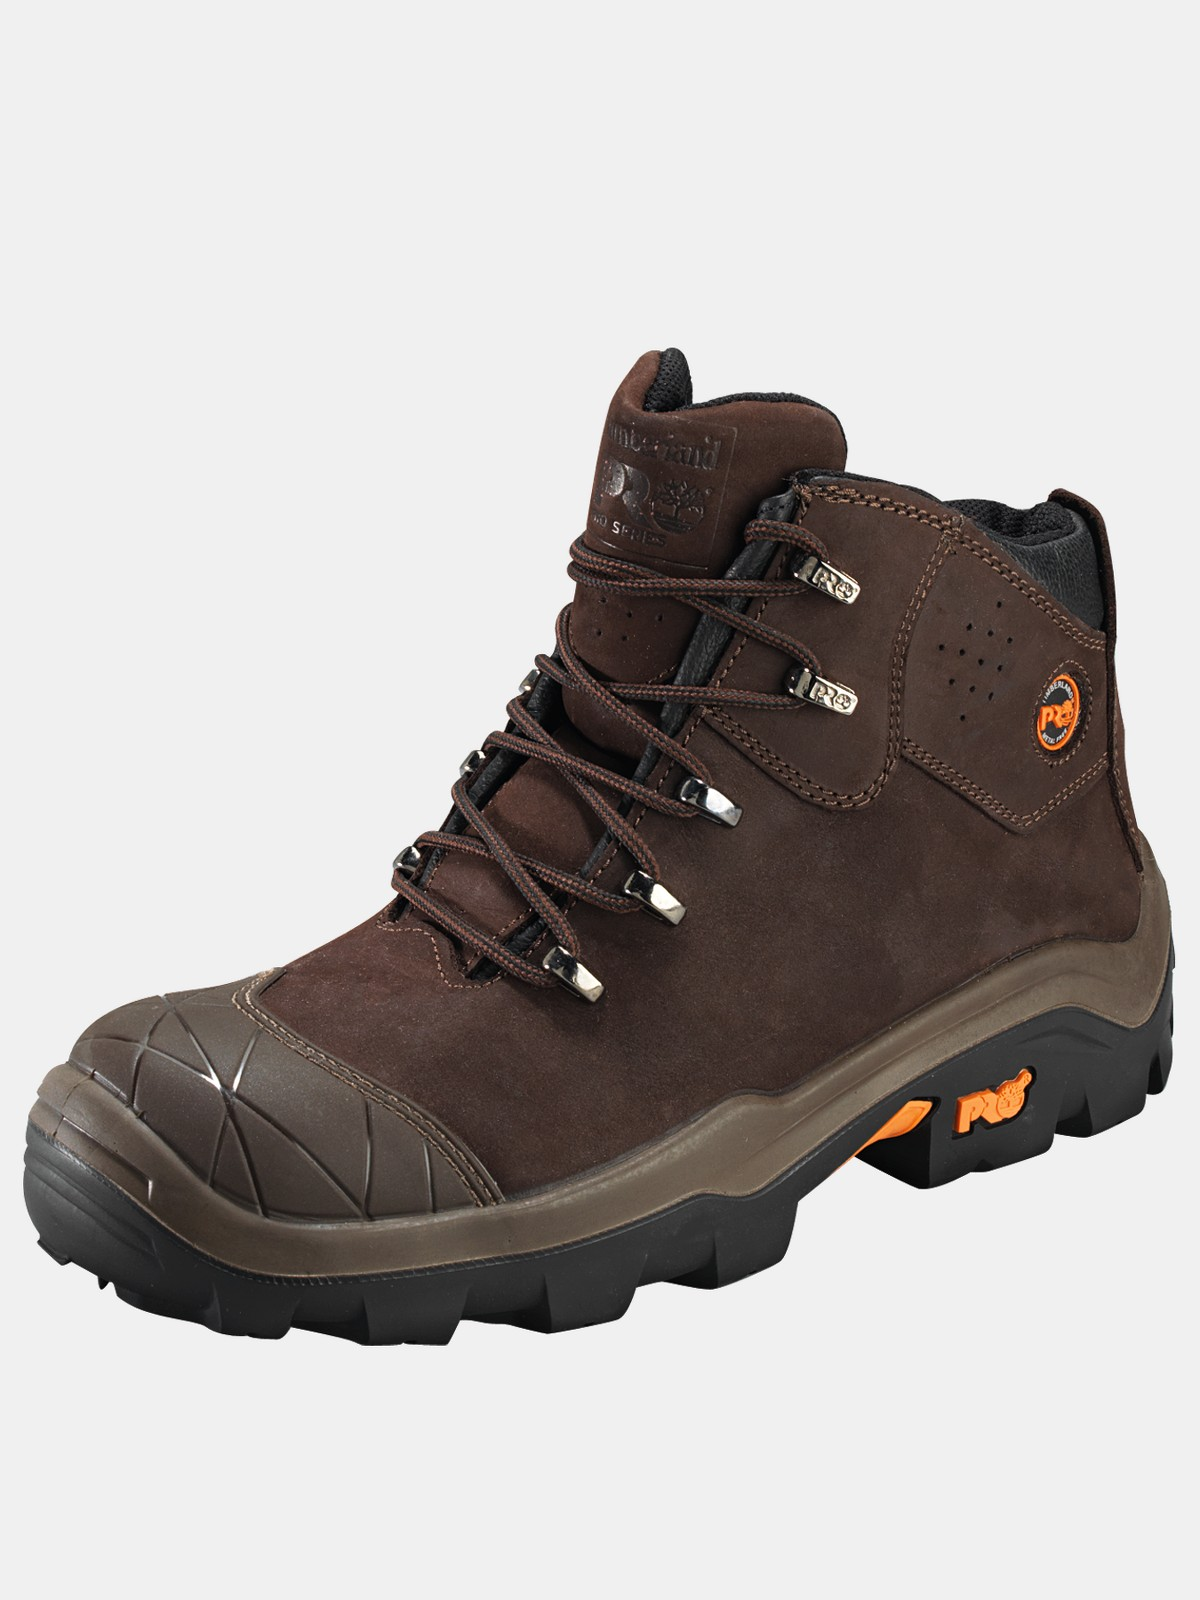 Timberland Boots For Men 2012 Timberland Snyd...